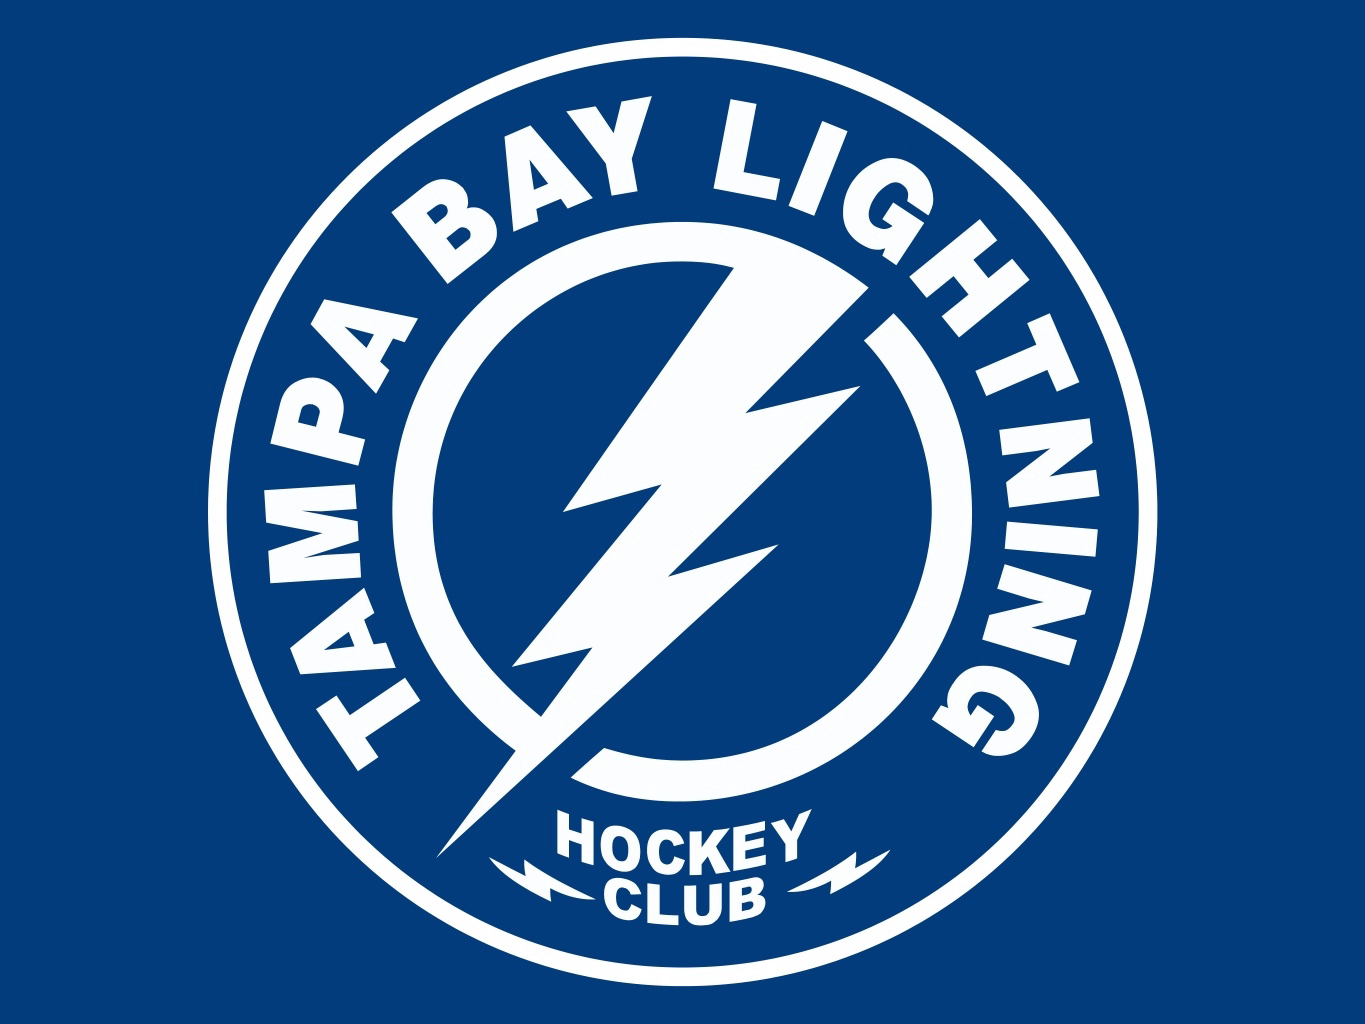 Tampa bay lightning wallpaper and background image - Tampa bay lightning wallpaper 1920x1080 ...